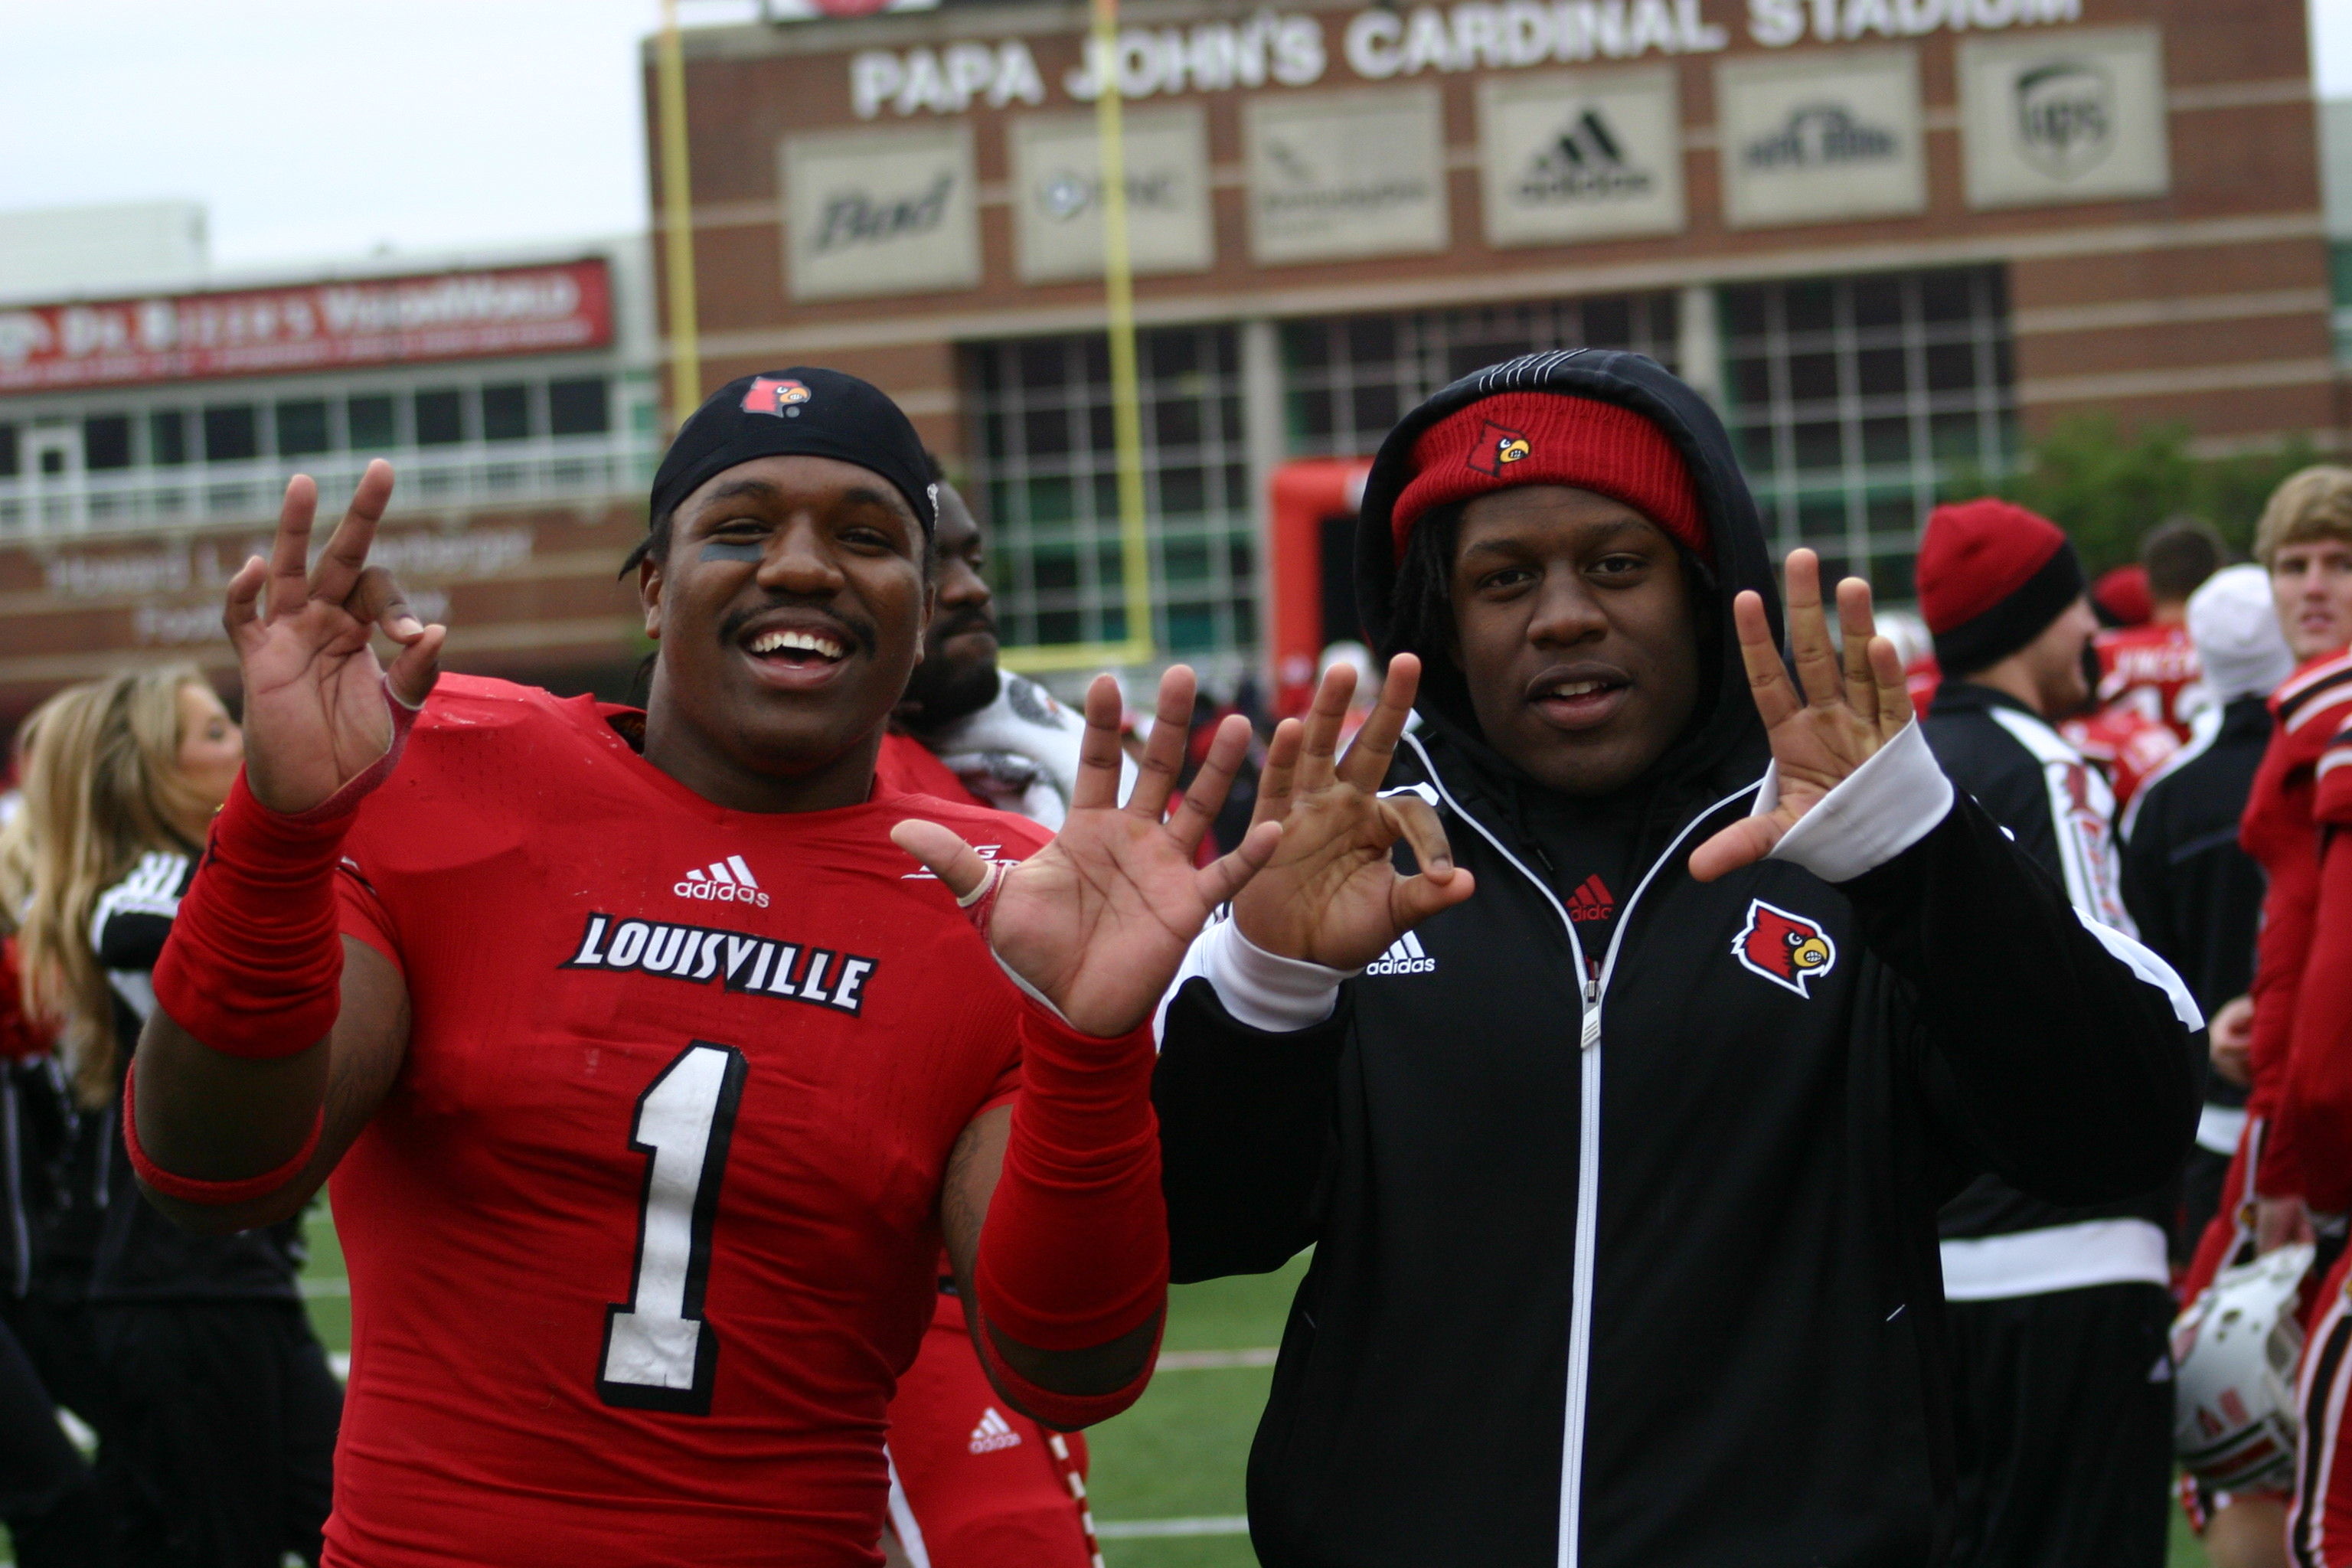 Keith Brown & Lamar Atkins Photo by Chris Hatfield